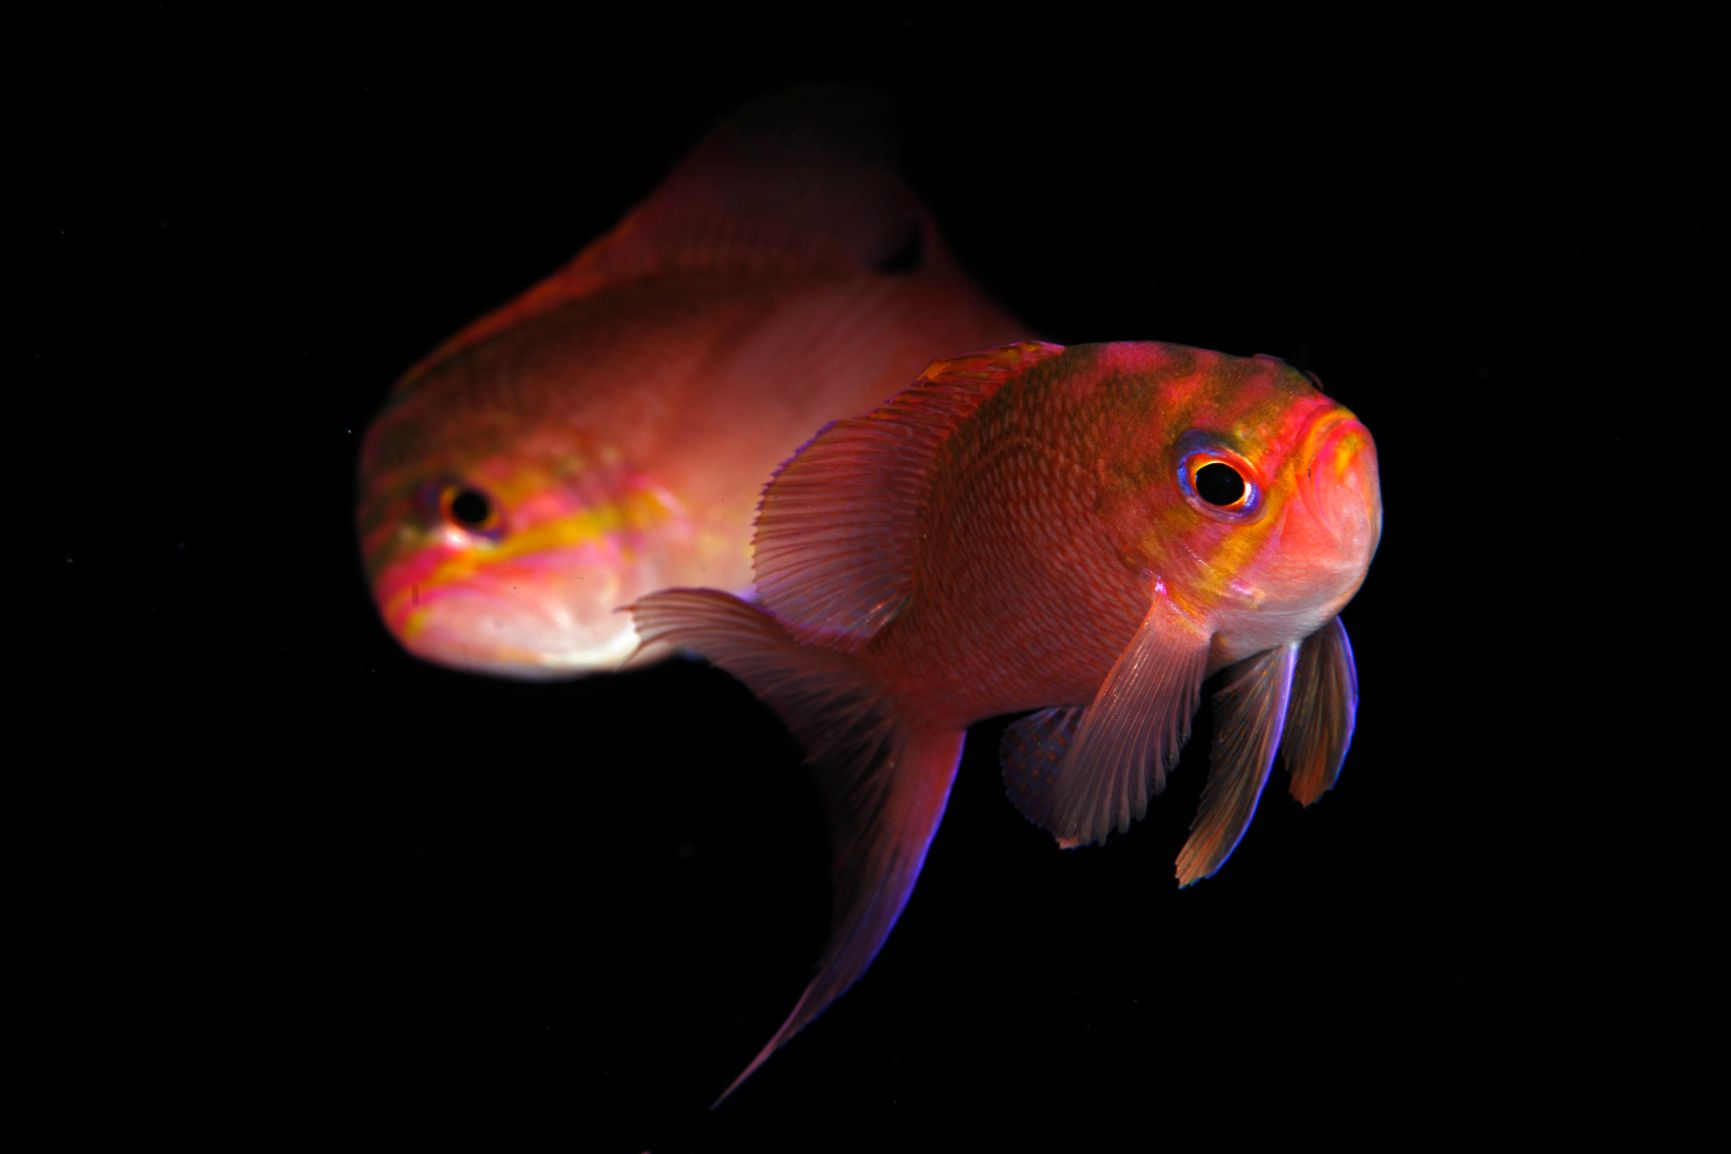 anthias-anthias panarea dattilo eolosub immersioni